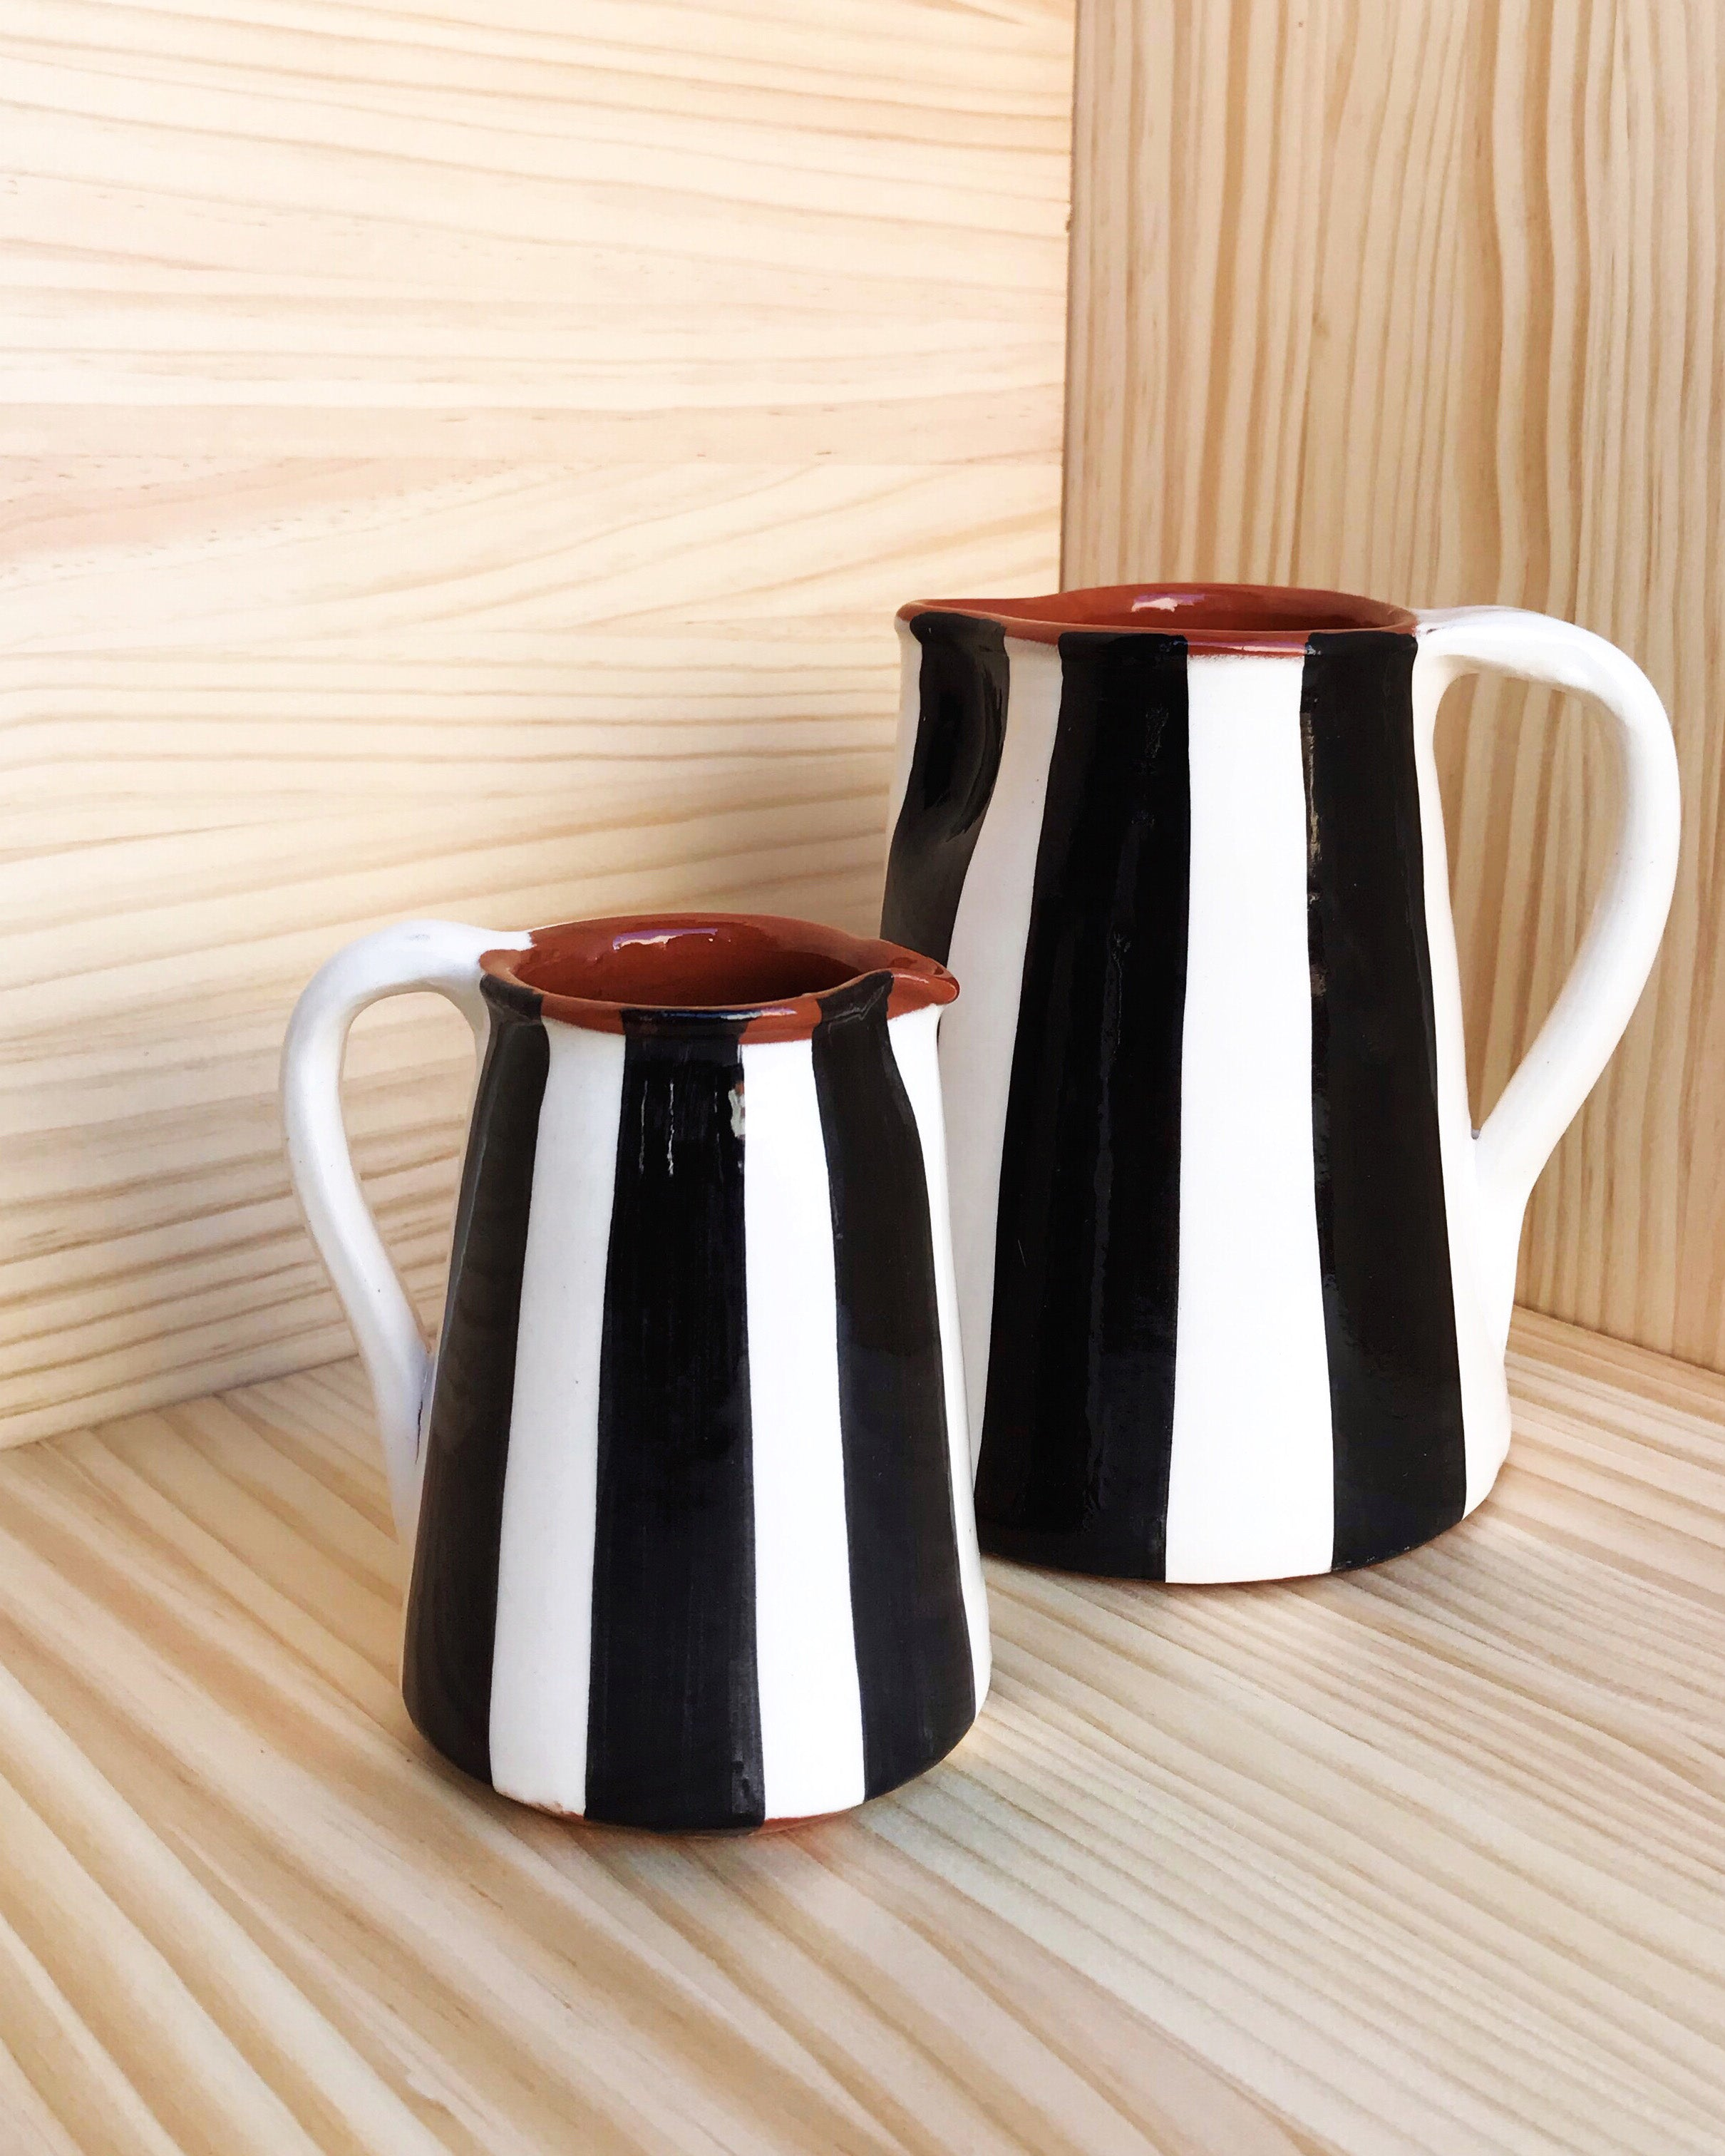 Handmade ceramic jugs geometric pattern black and white B&W